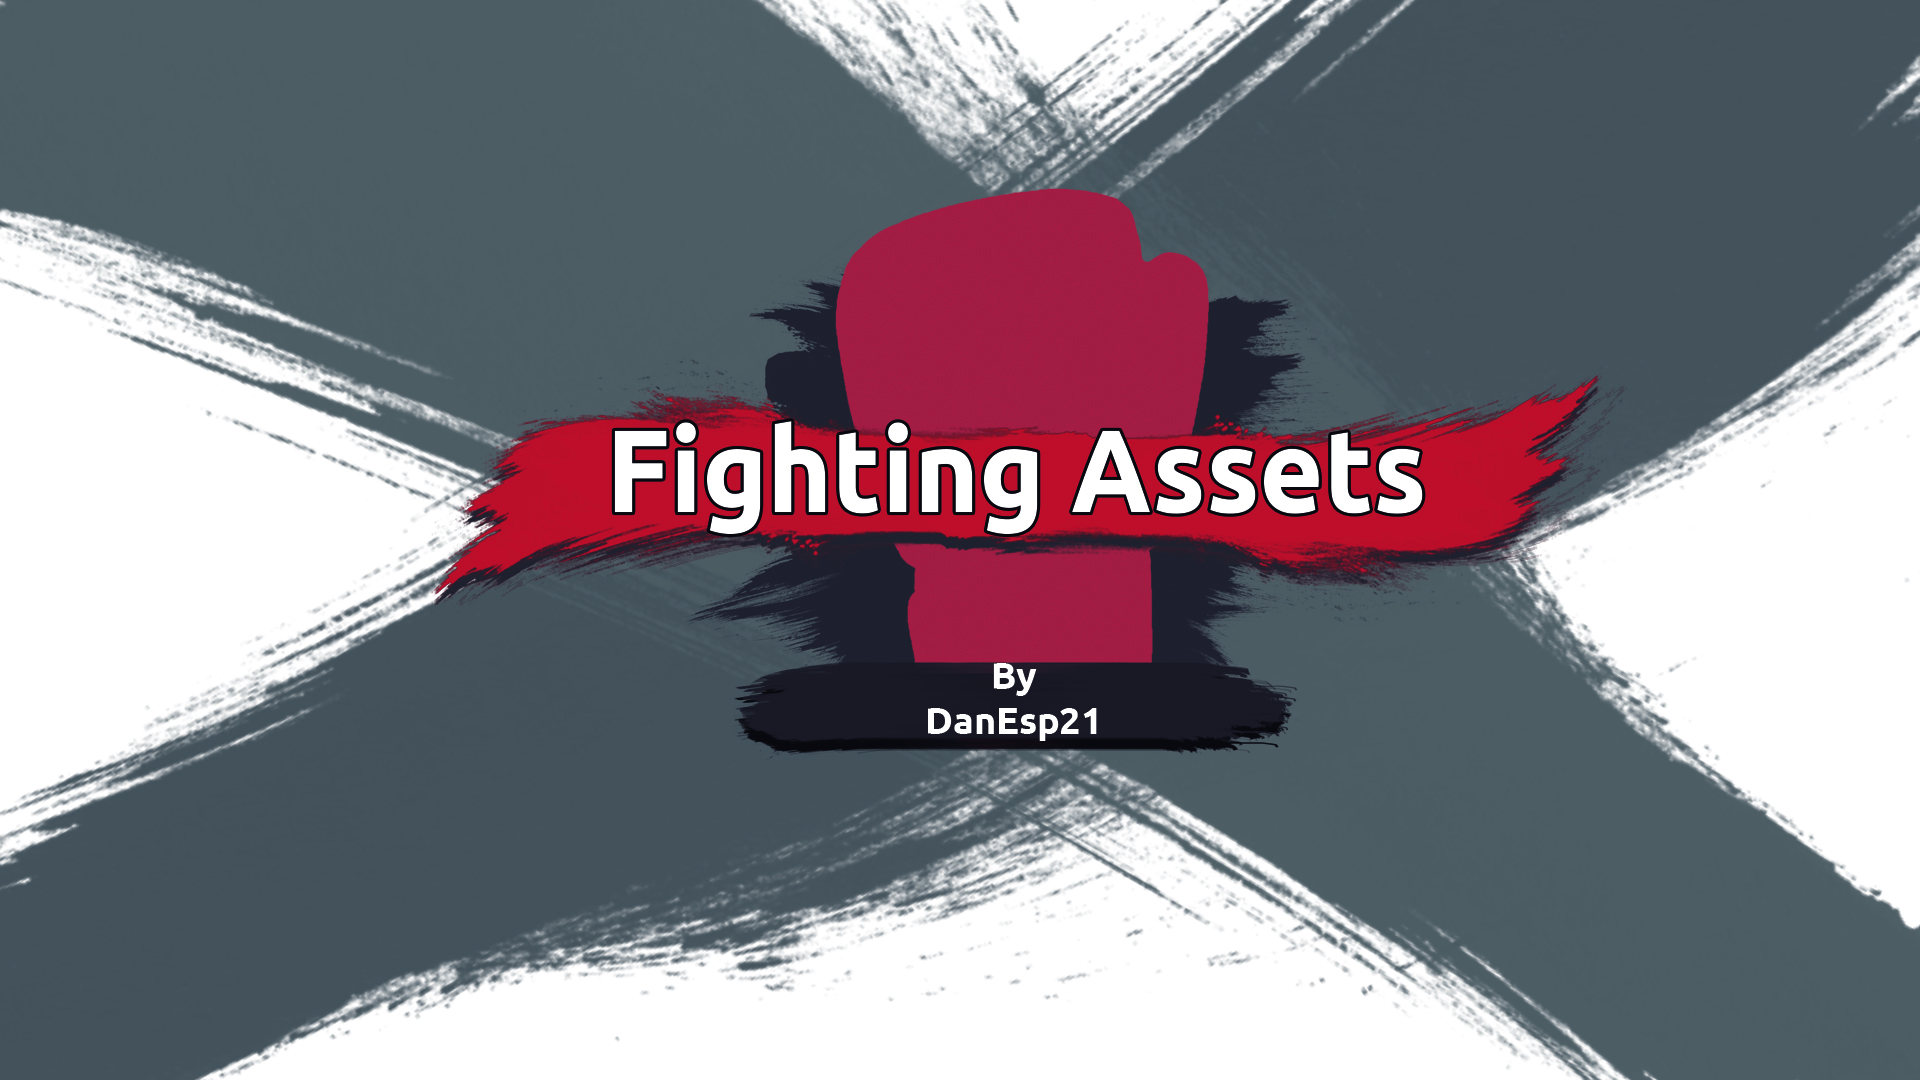 Fighting Assets